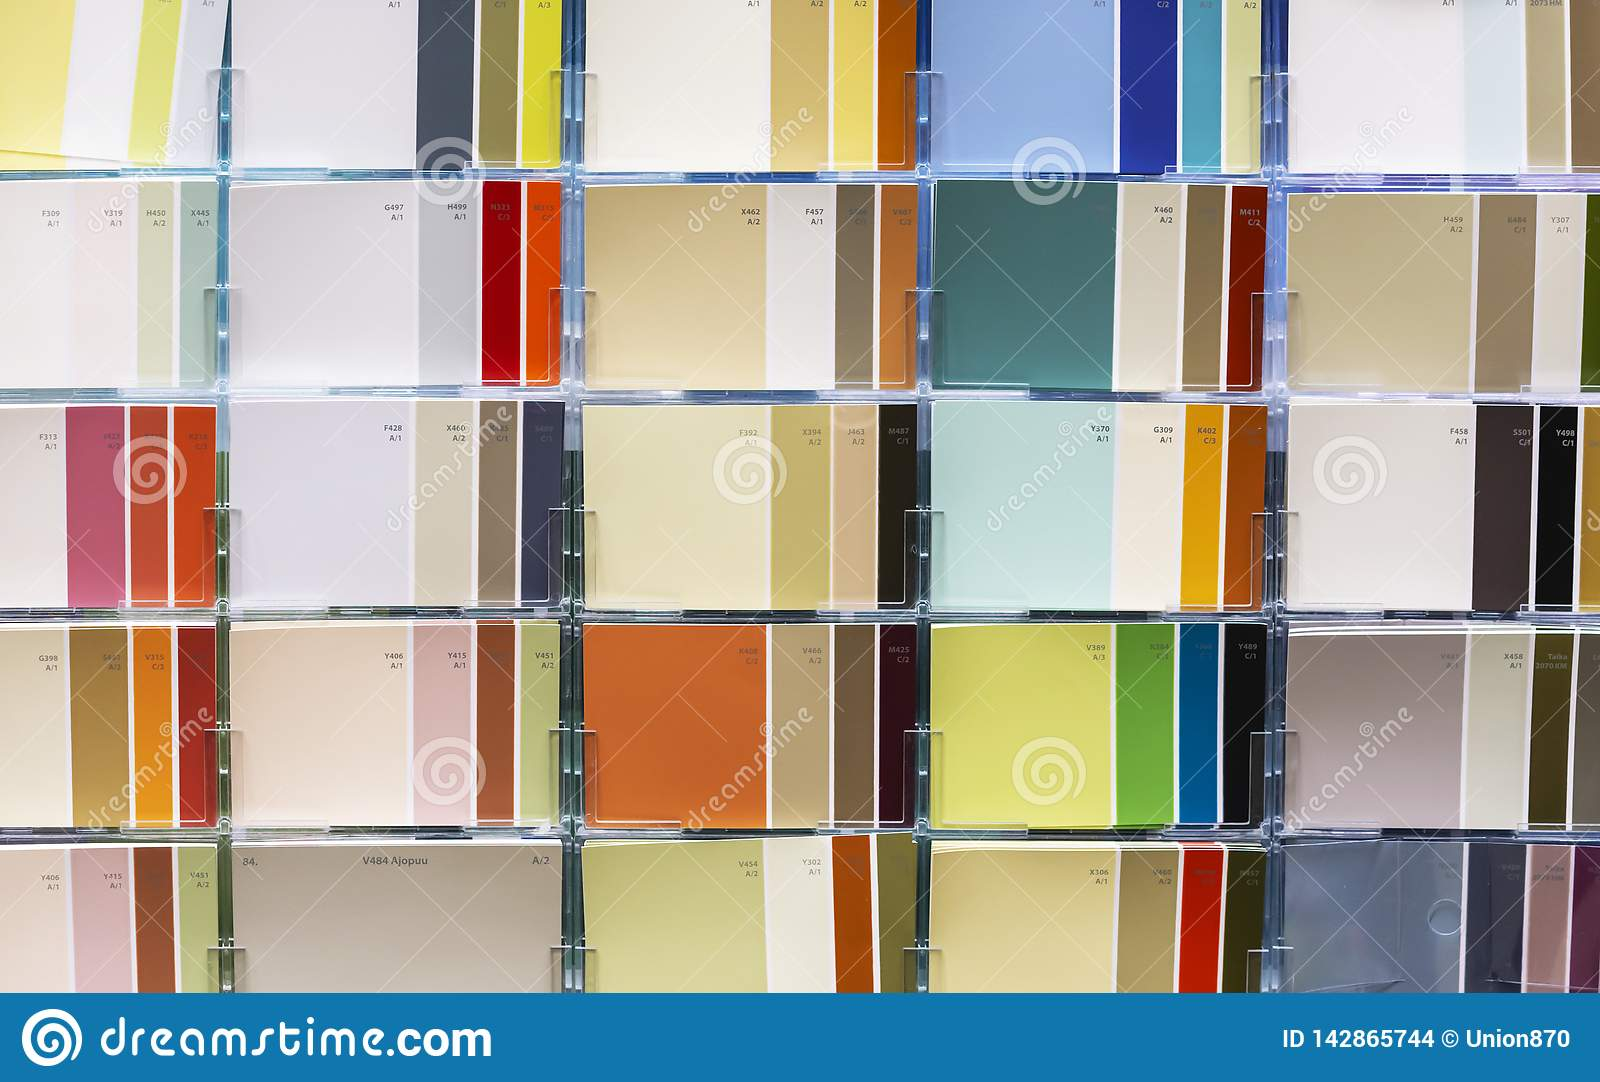 Samples of color combinations. The palette of harmonious colors